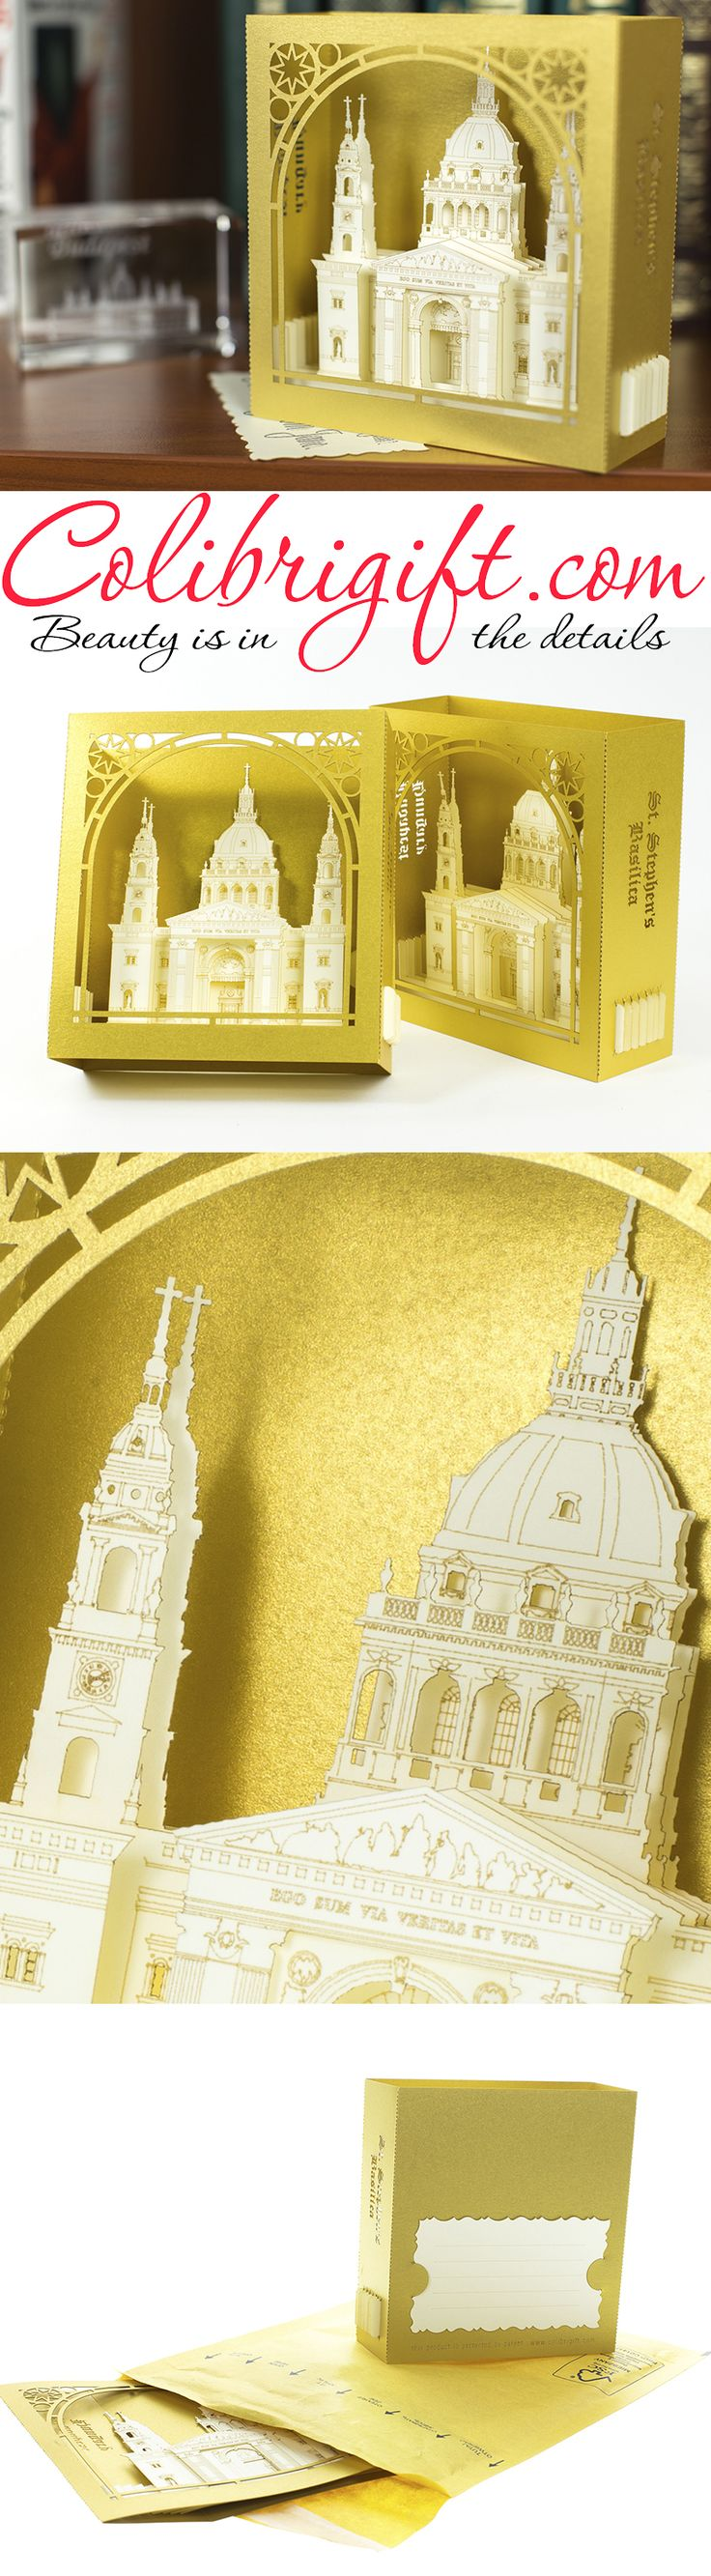 #Budapest #Saint #Stephen's Basilica #Greeting card #birthday card #unique gift #gift card #Hungary #origami #kirigami #Colibrigift